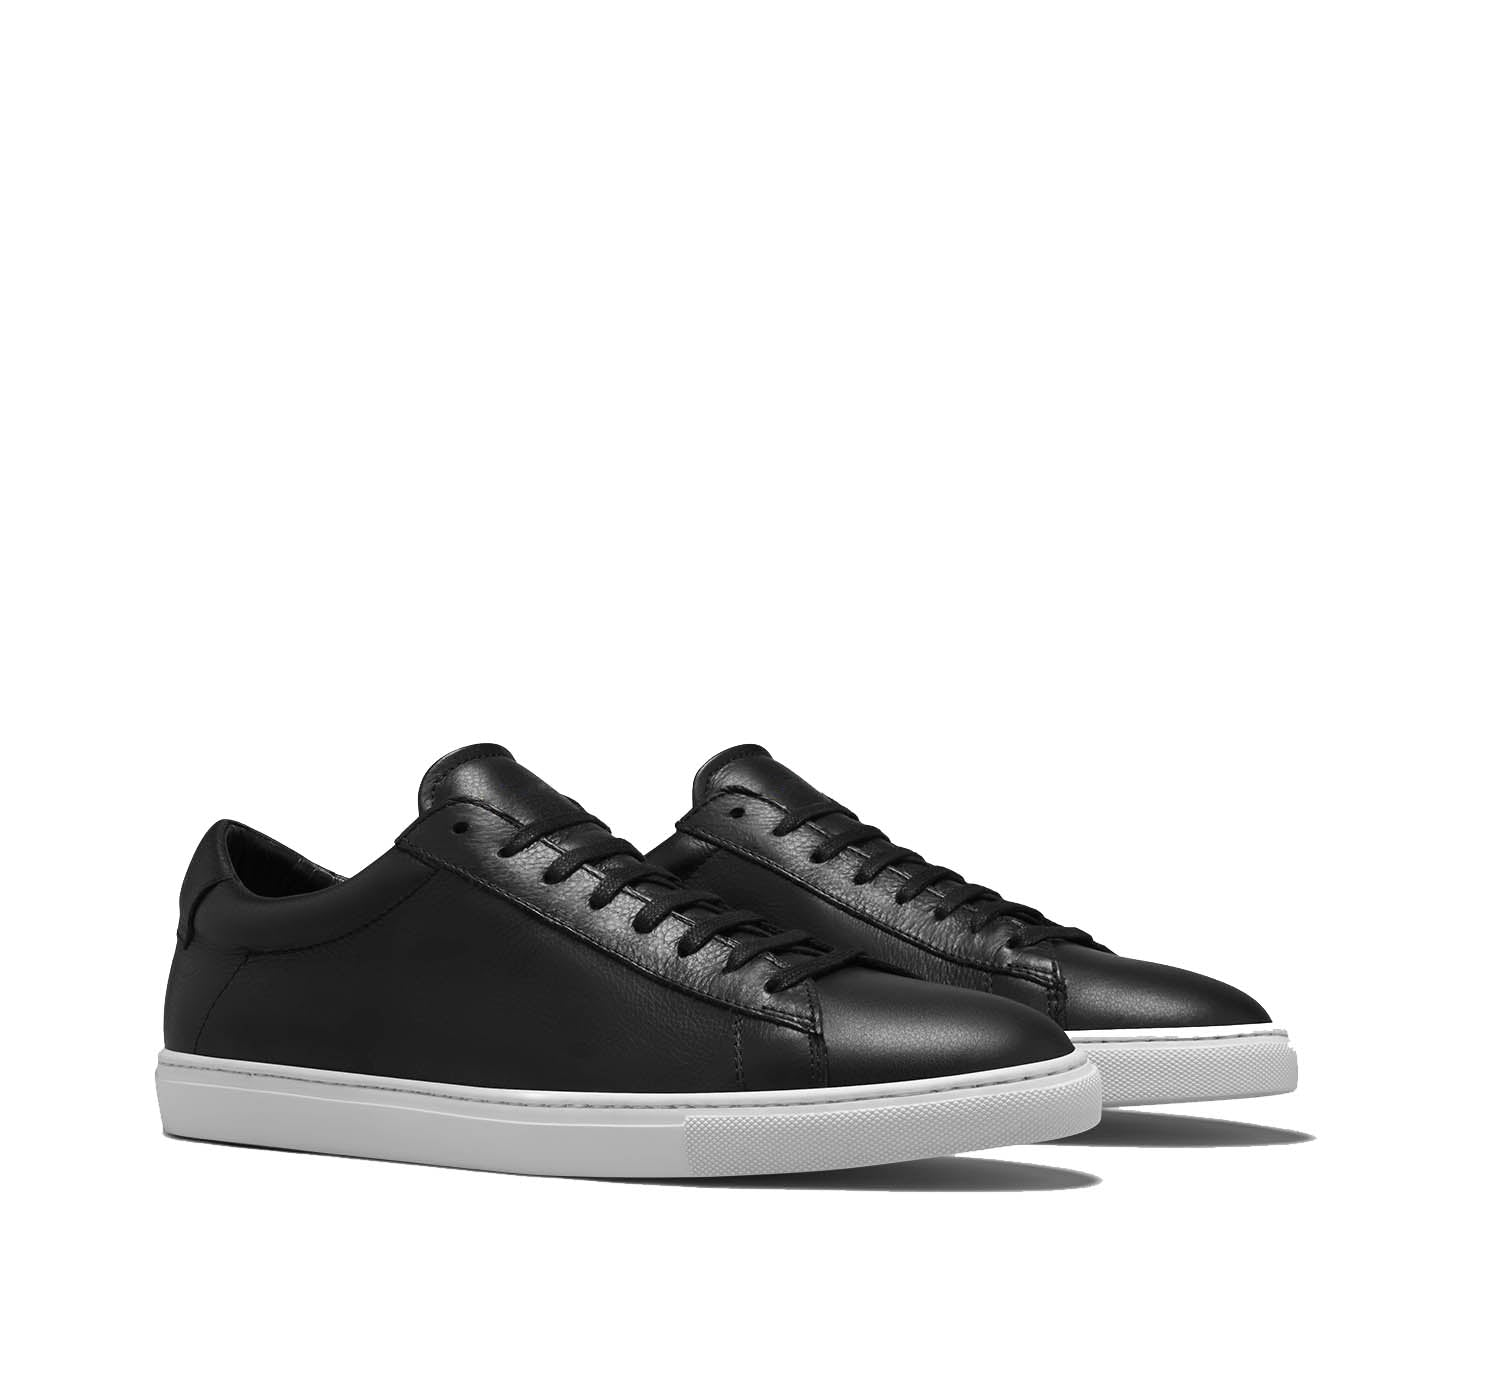 Black Leather Low Top Lace Up Sneaker for Men. White Comfortable Cup Sole.